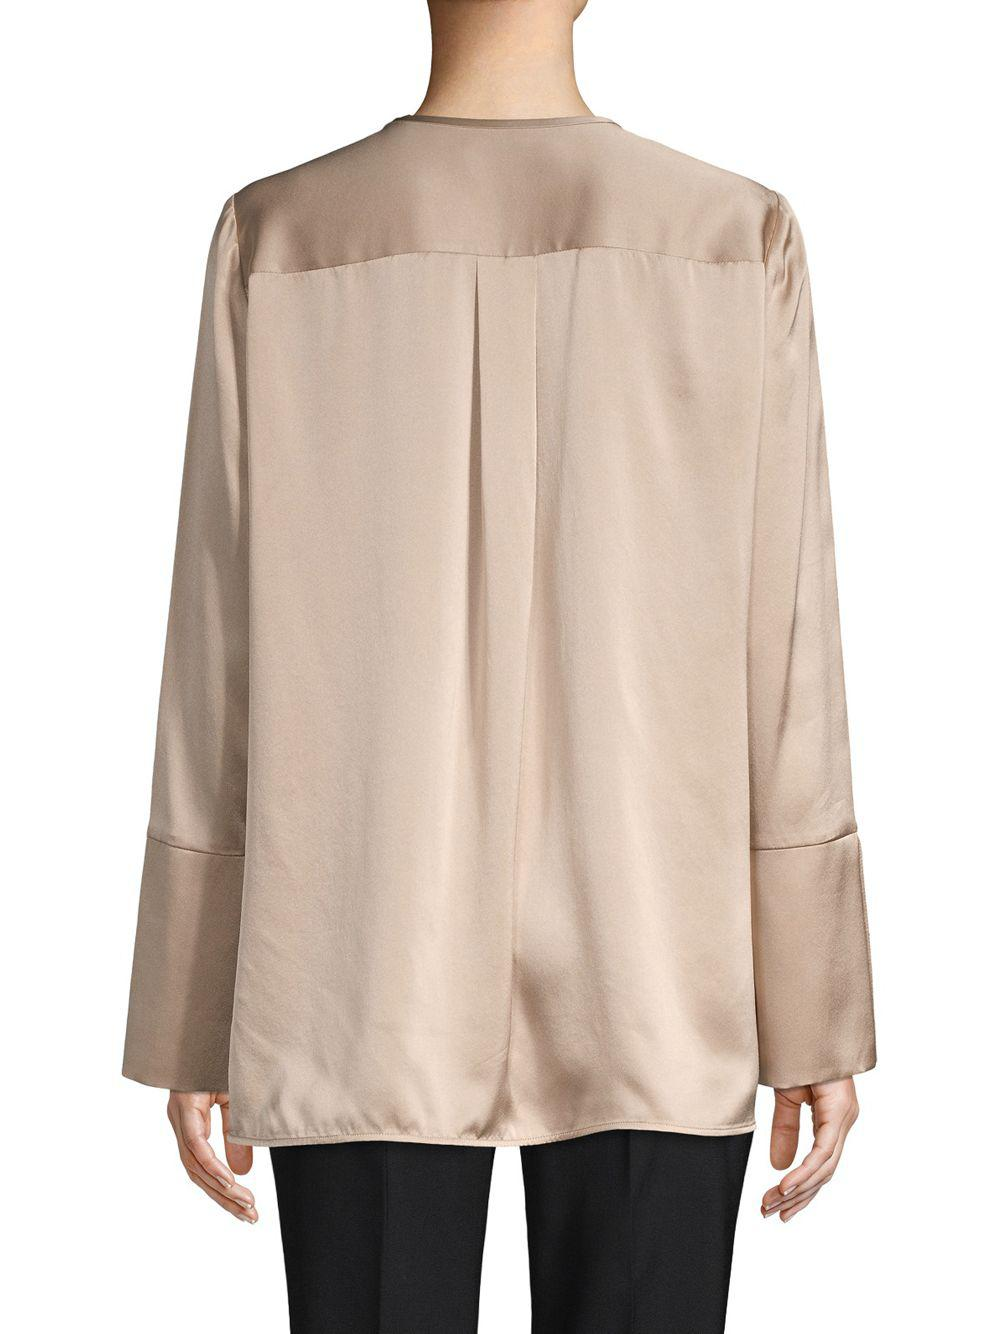 590491880543a1 Lyst - Lafayette 148 New York Georgie Silk Blouse in Natural